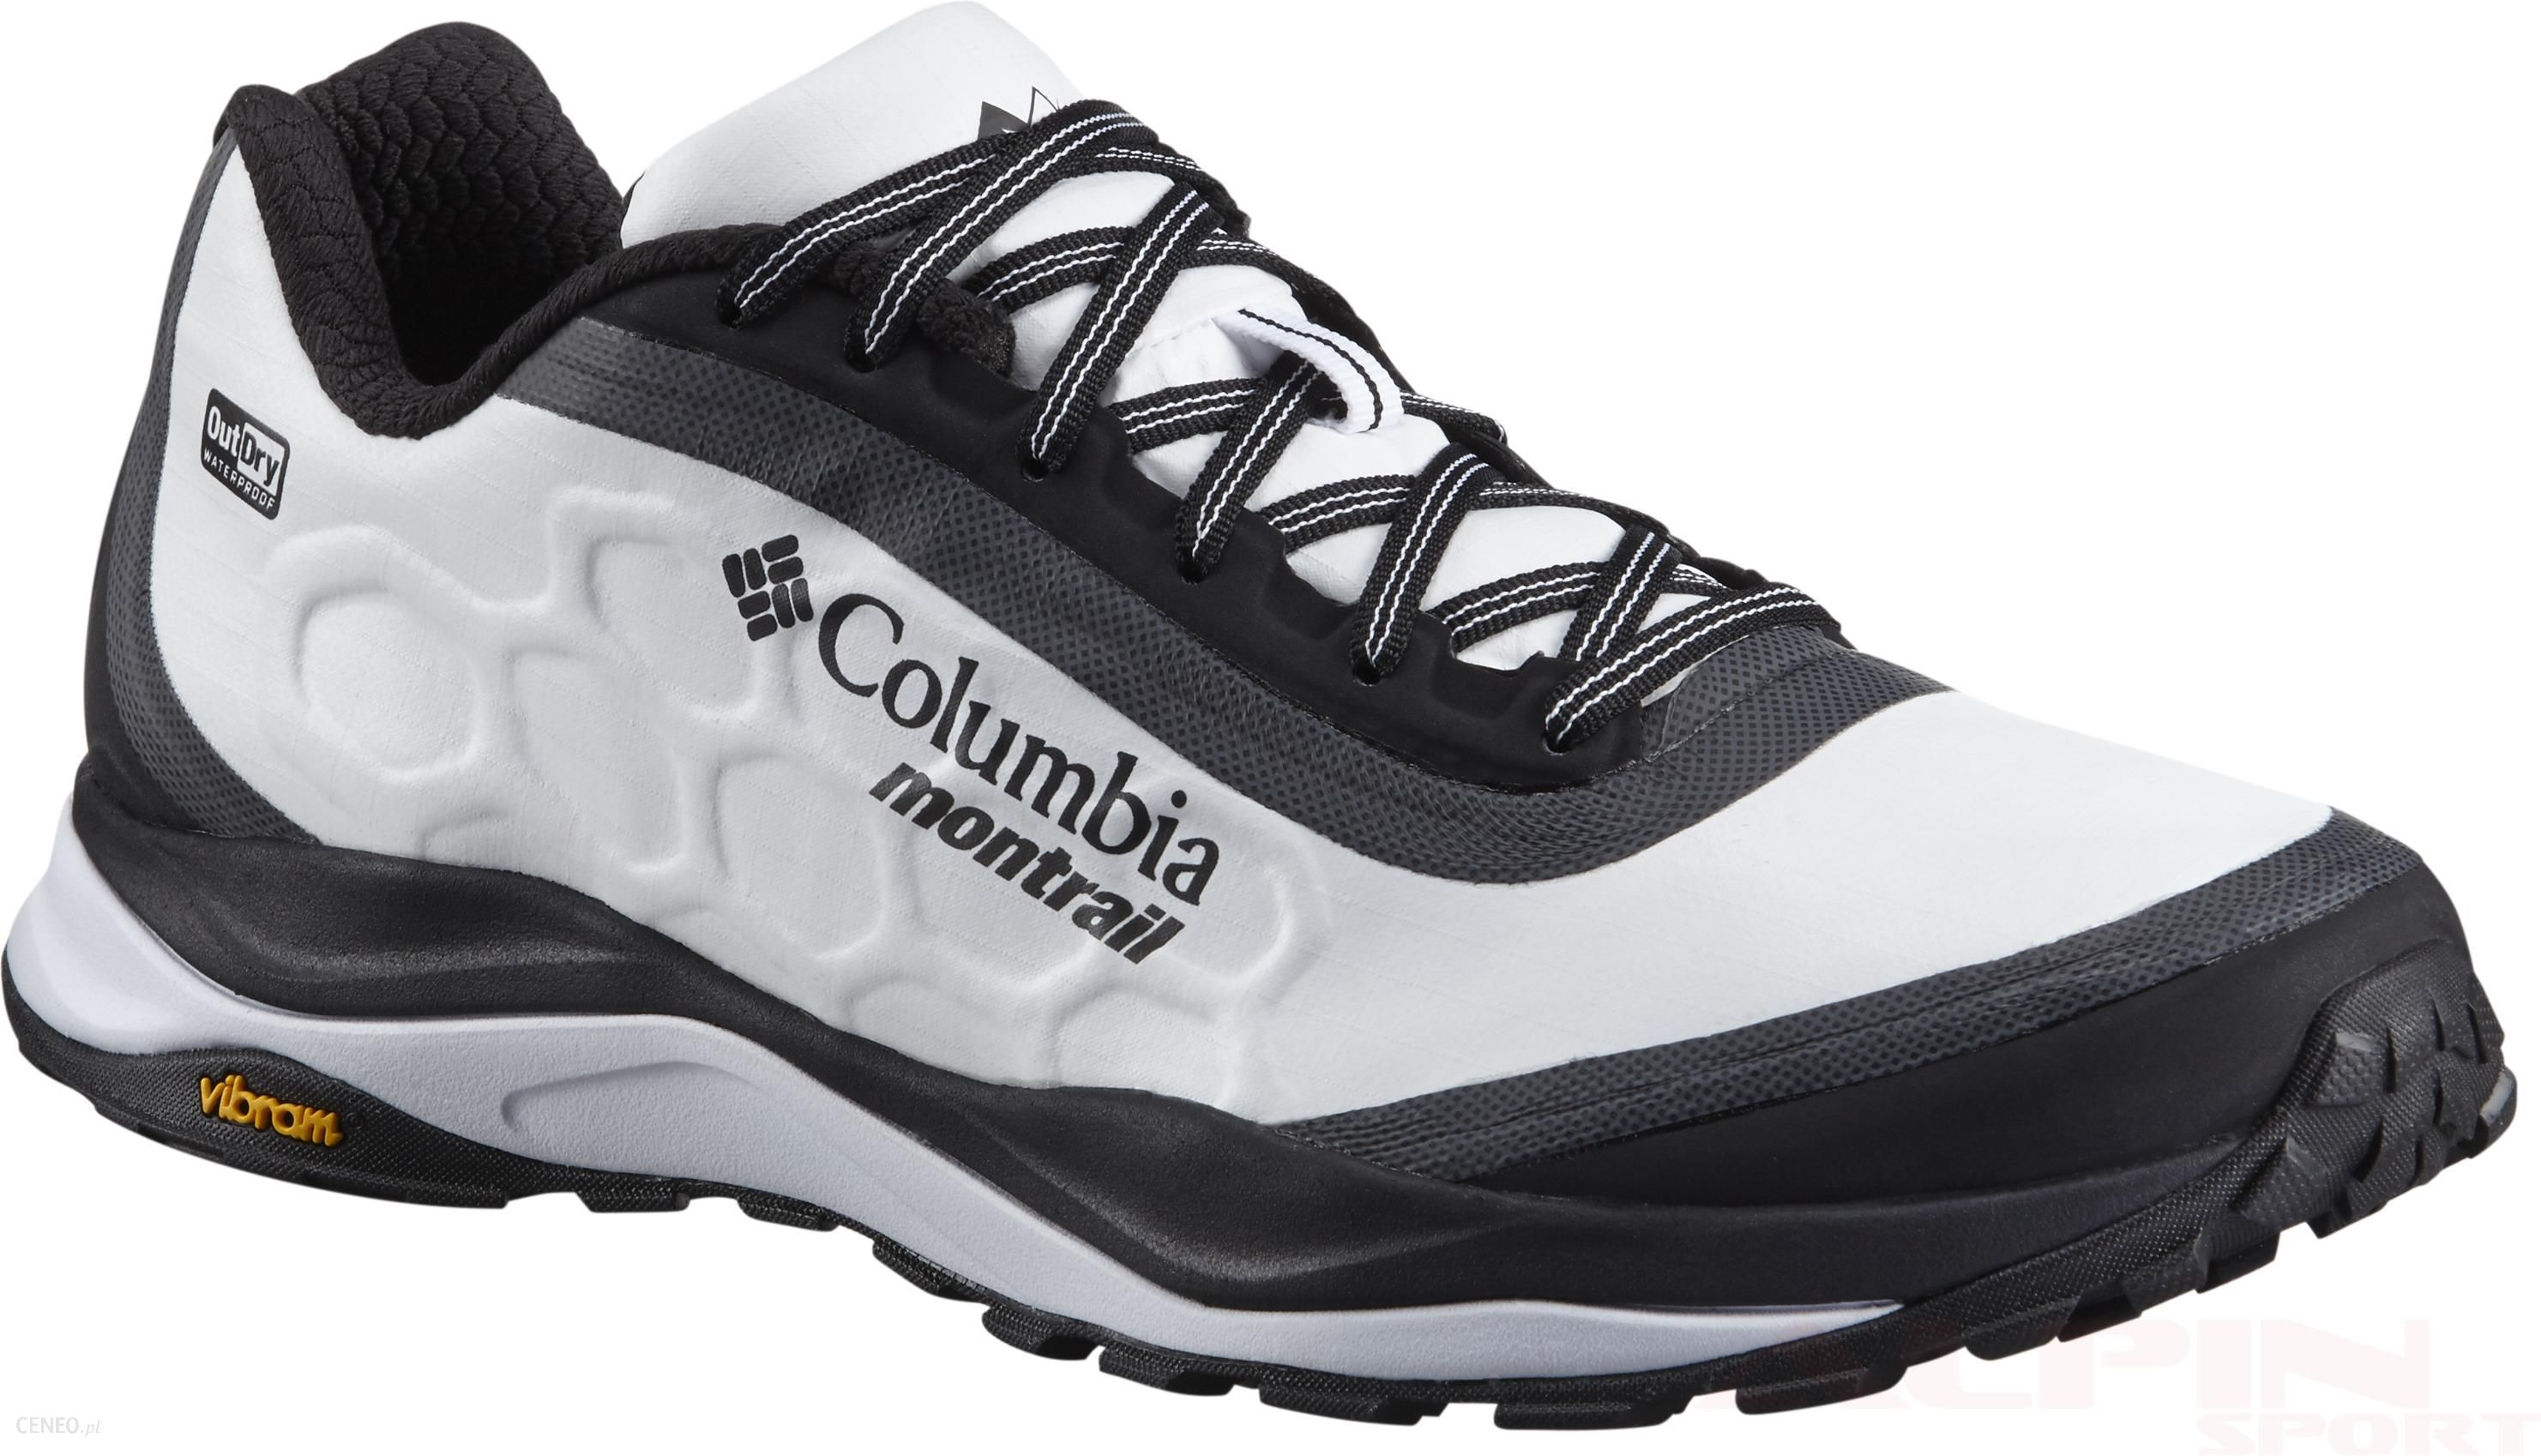 Columbia Montrail Trient Outdry Extreme BM4523011 - Ceny i opinie ... eaa6df384b2